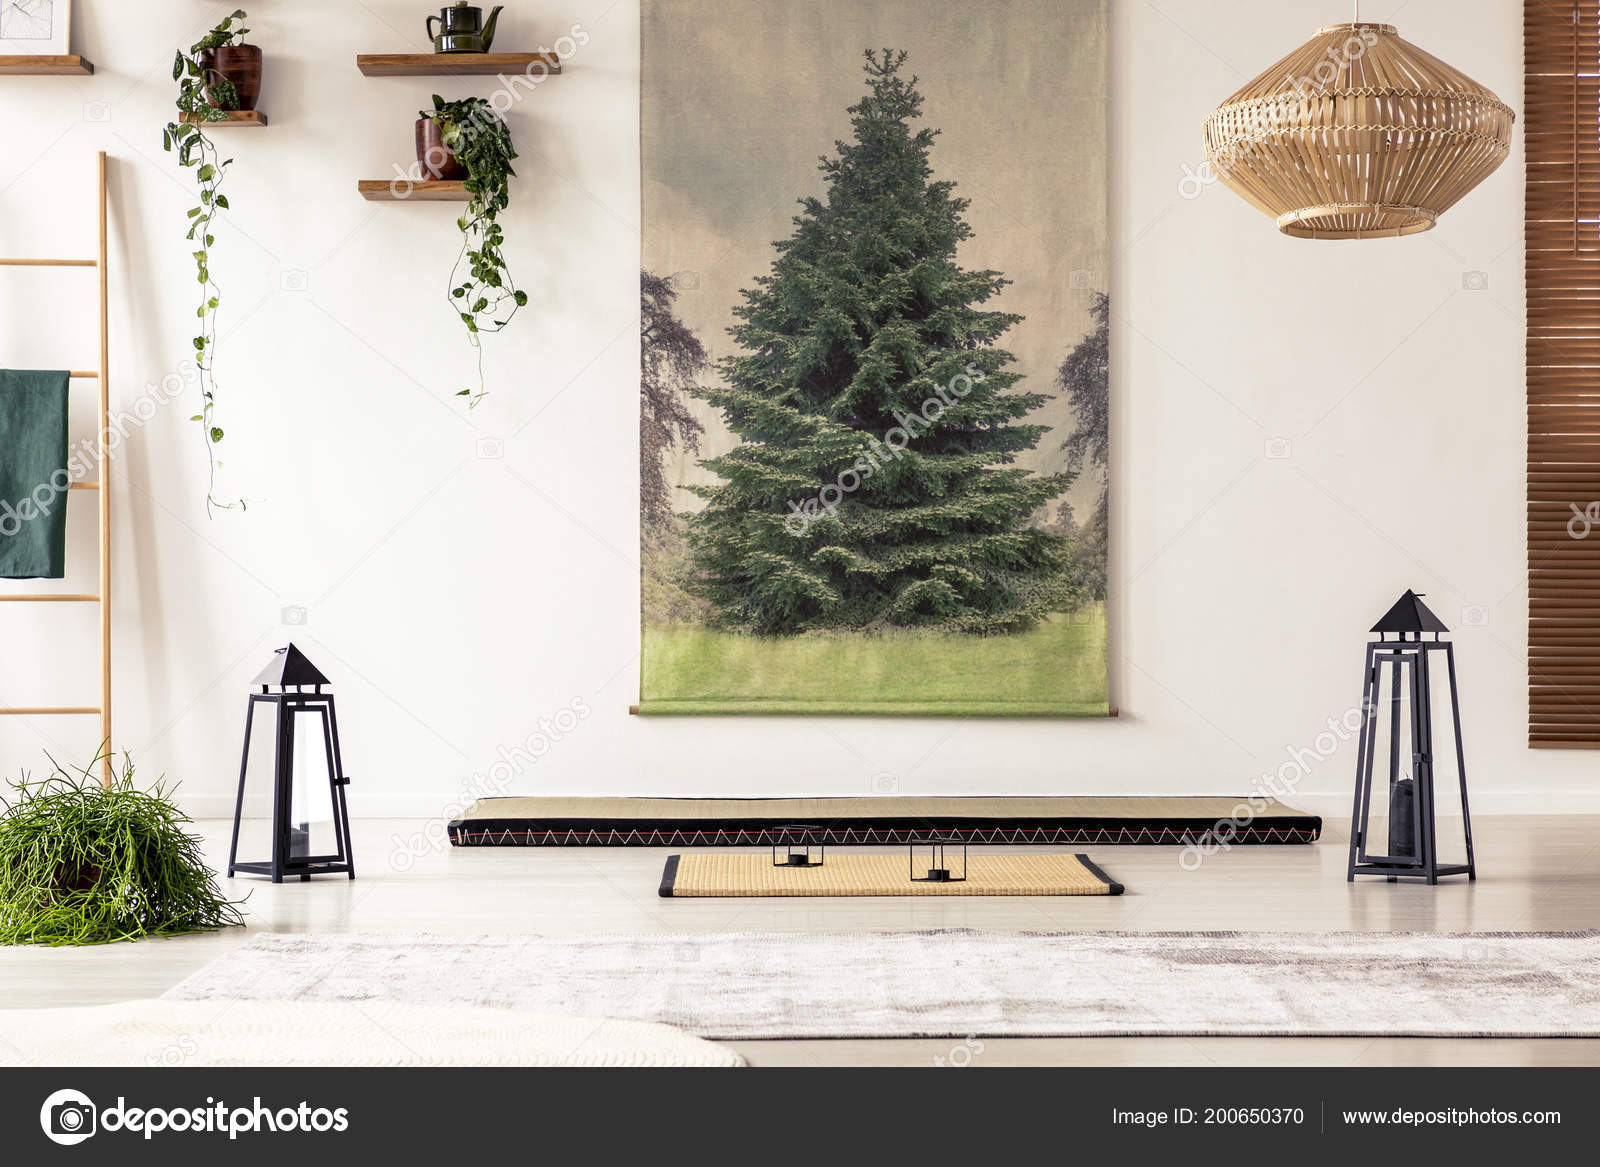 Tree poster wall lamps plants tatami mat mattress japanese room tree poster on the wall lamps plants tatami mat and mattress in a japanese room interior photographee mozeypictures Gallery